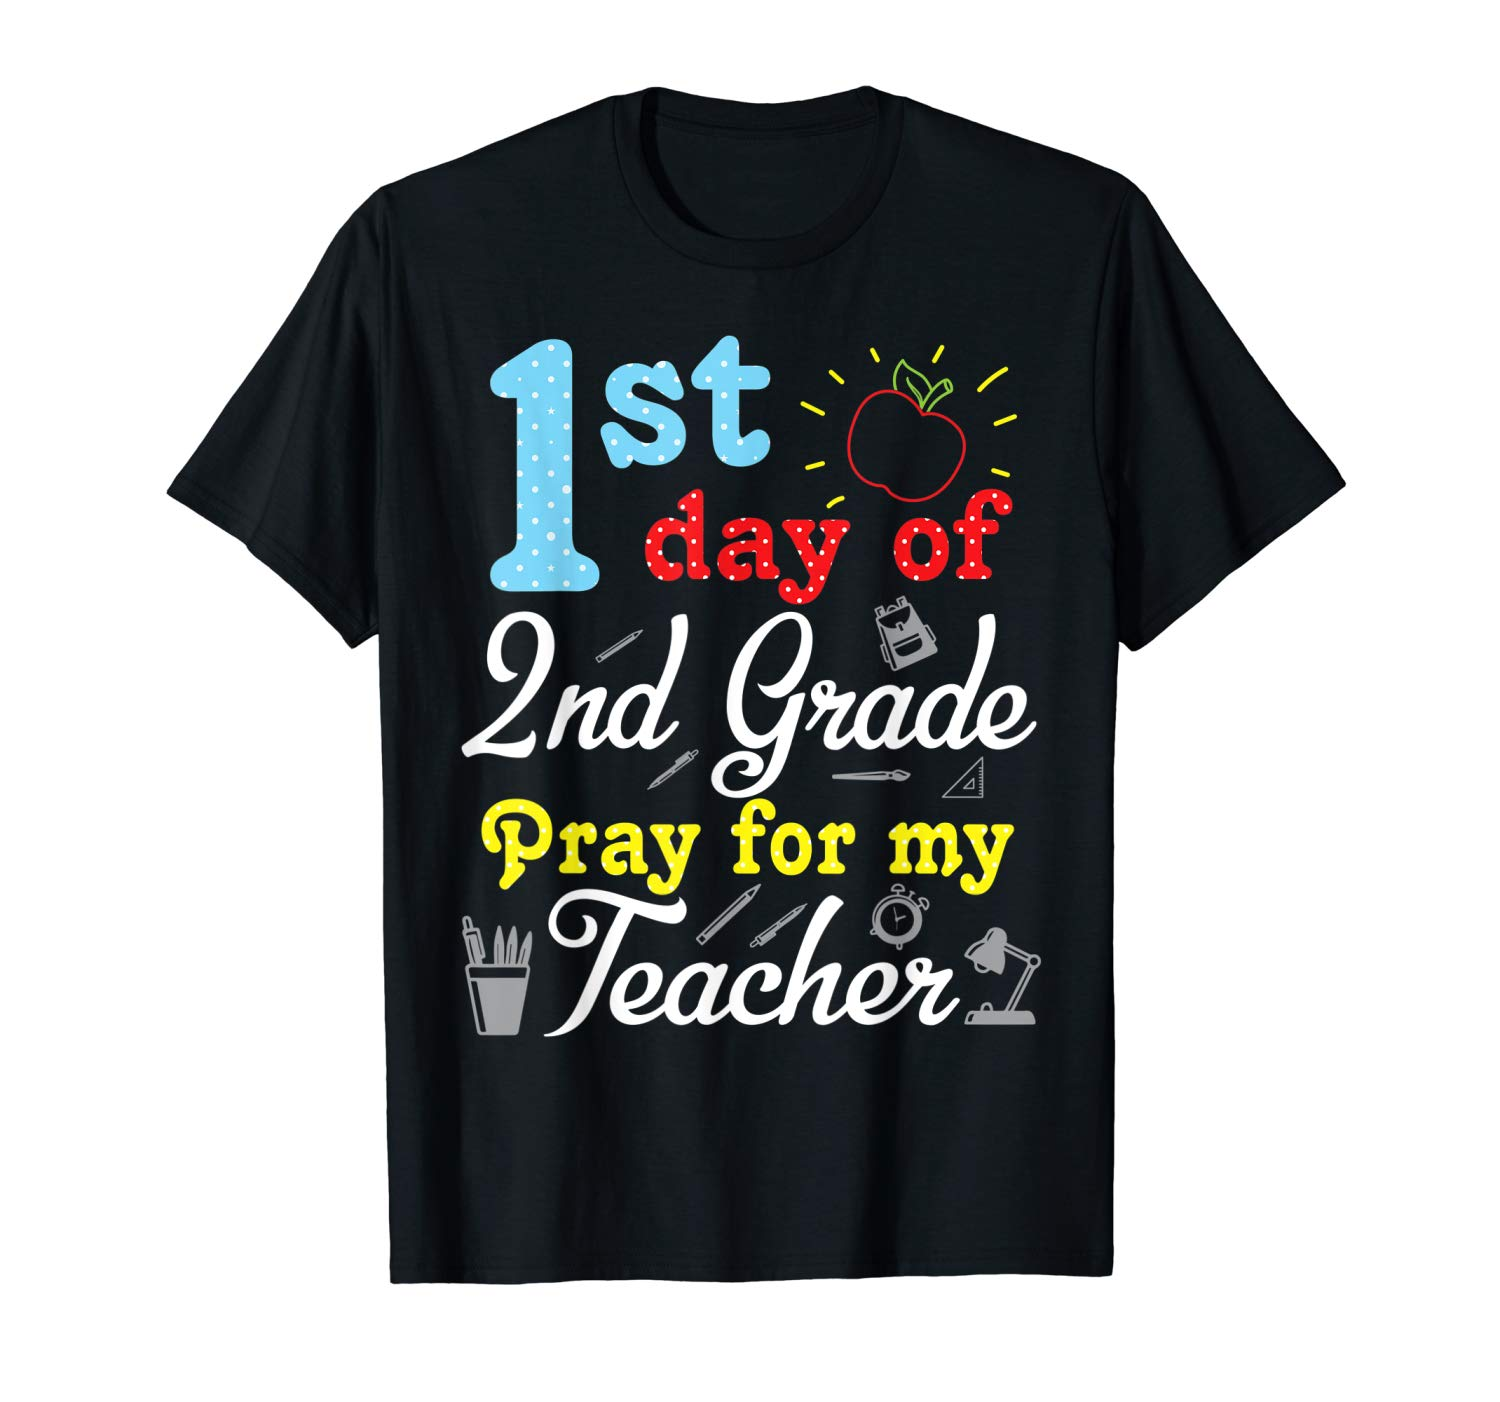 Student 1st Day Of 2nd Grade Pray For My Tea Happy Shirt